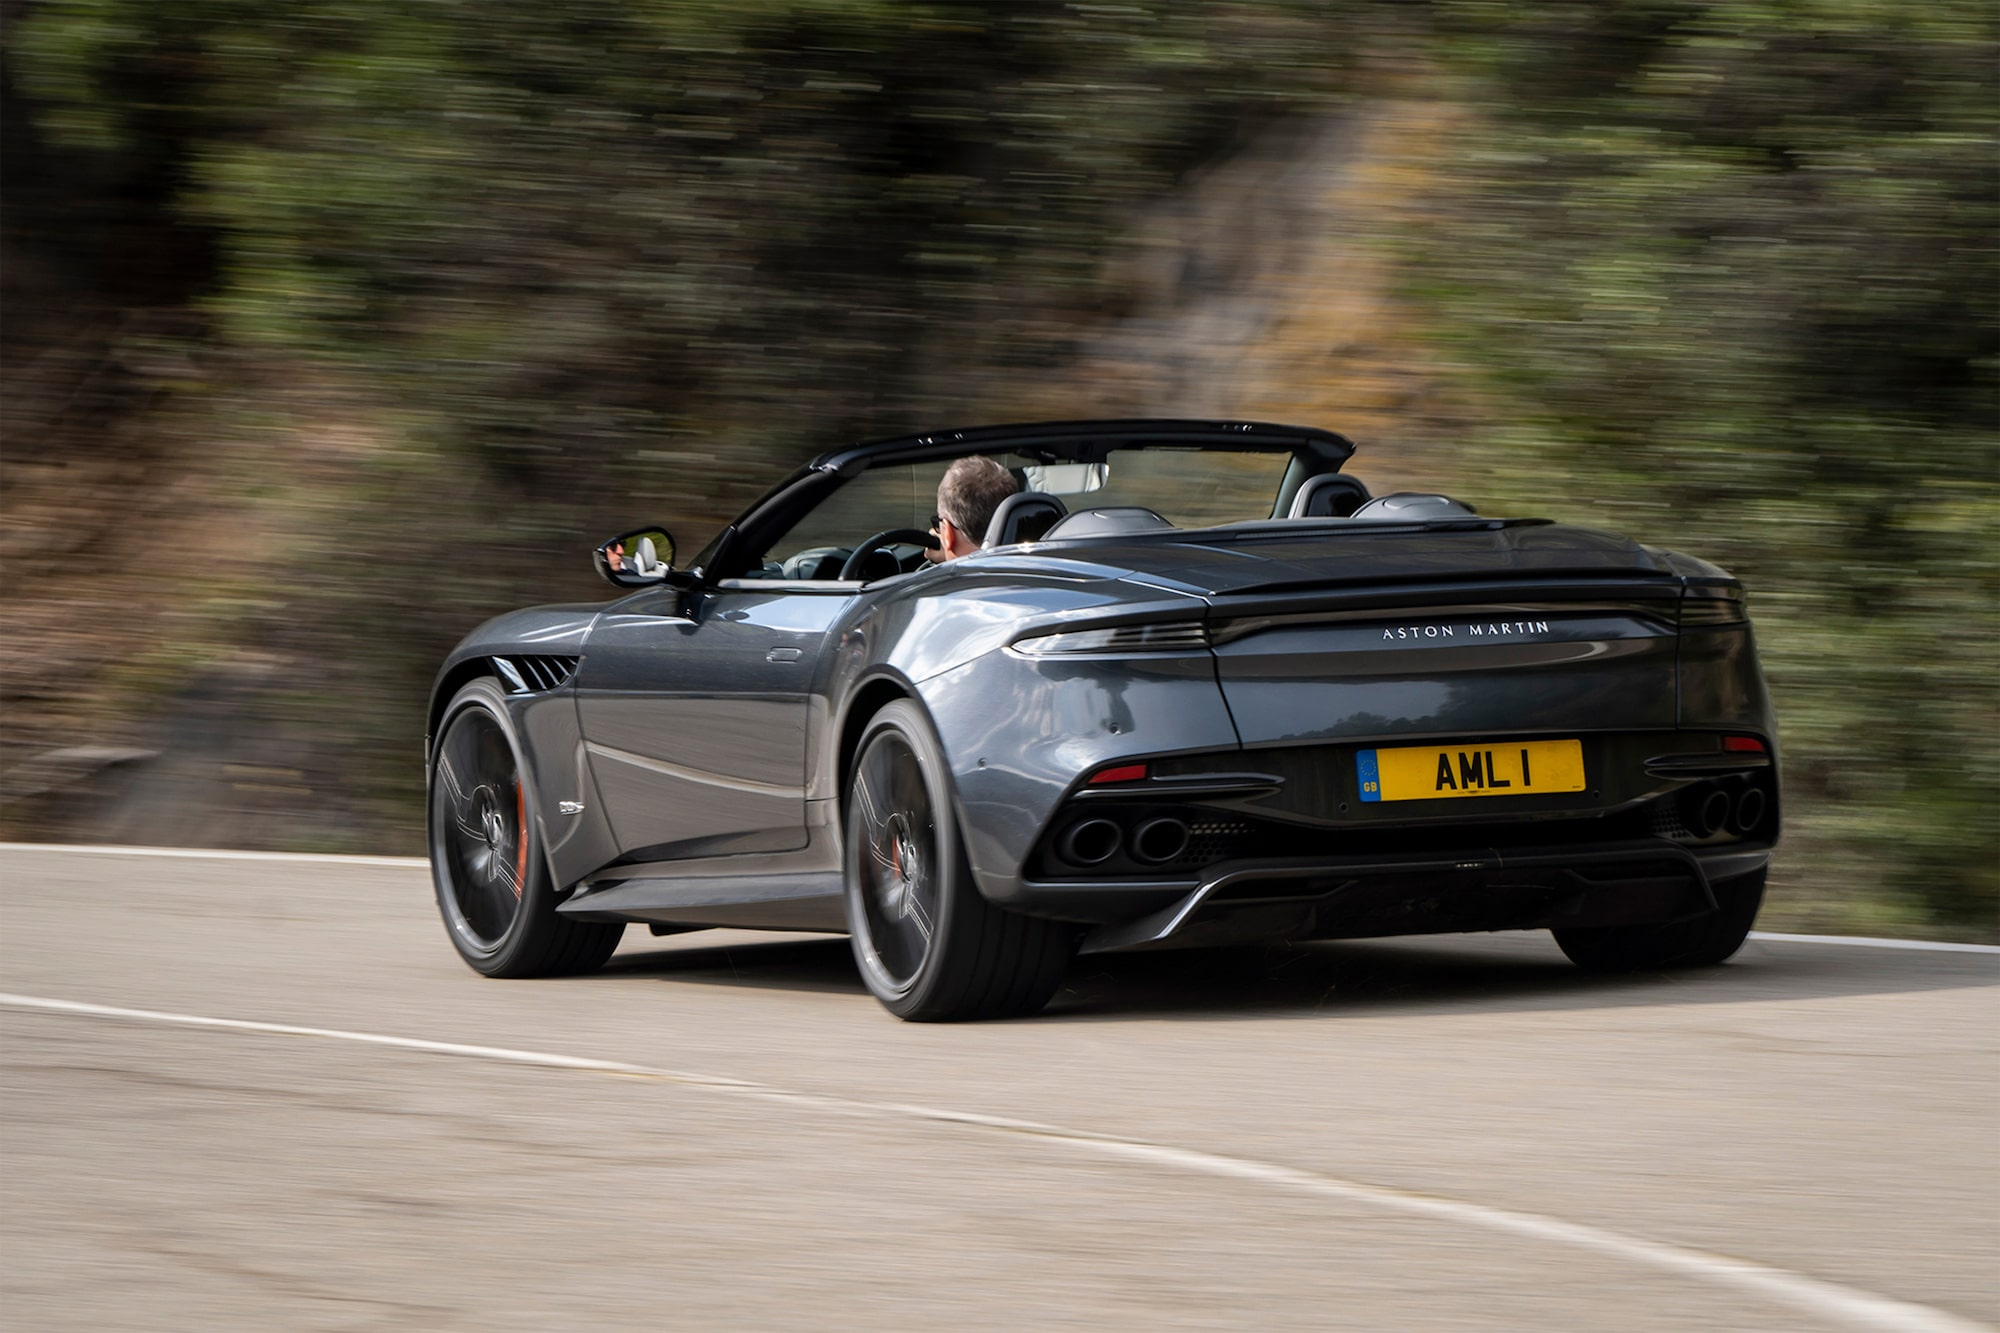 dominic fraser sony alpha 6400 aston martin car shot from behind being driven along a mountain road